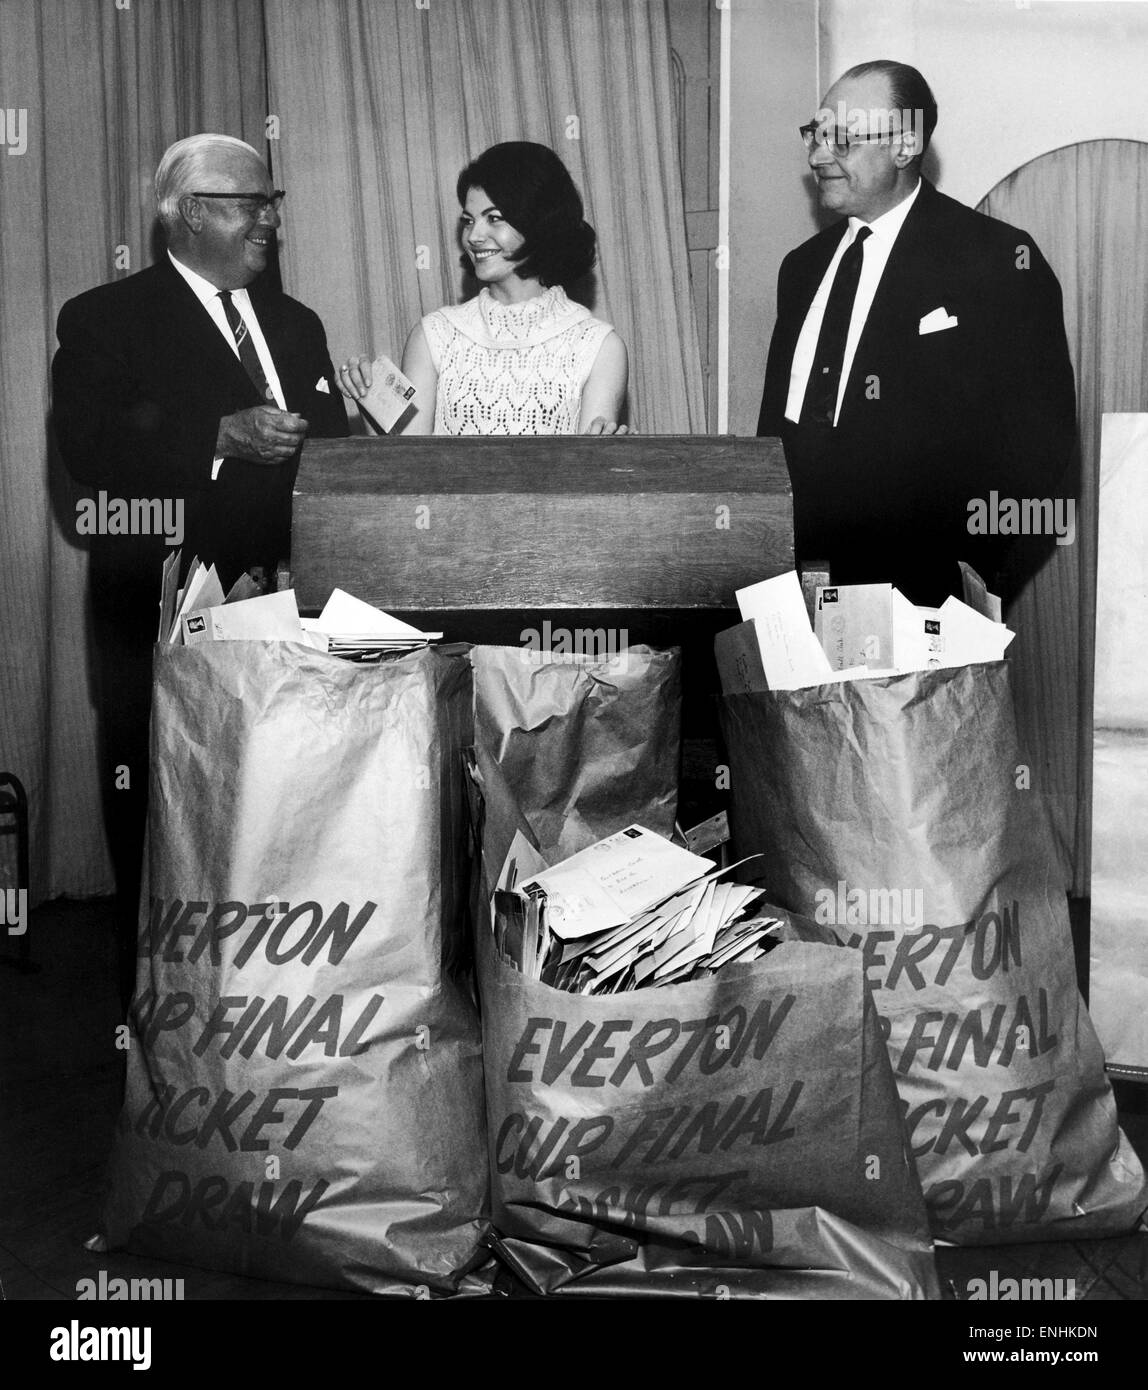 World Cup Queen 1966. Sheila Forrest makes a draw for the balance of Everton's share of tickets for the FA Cup - Stock Image